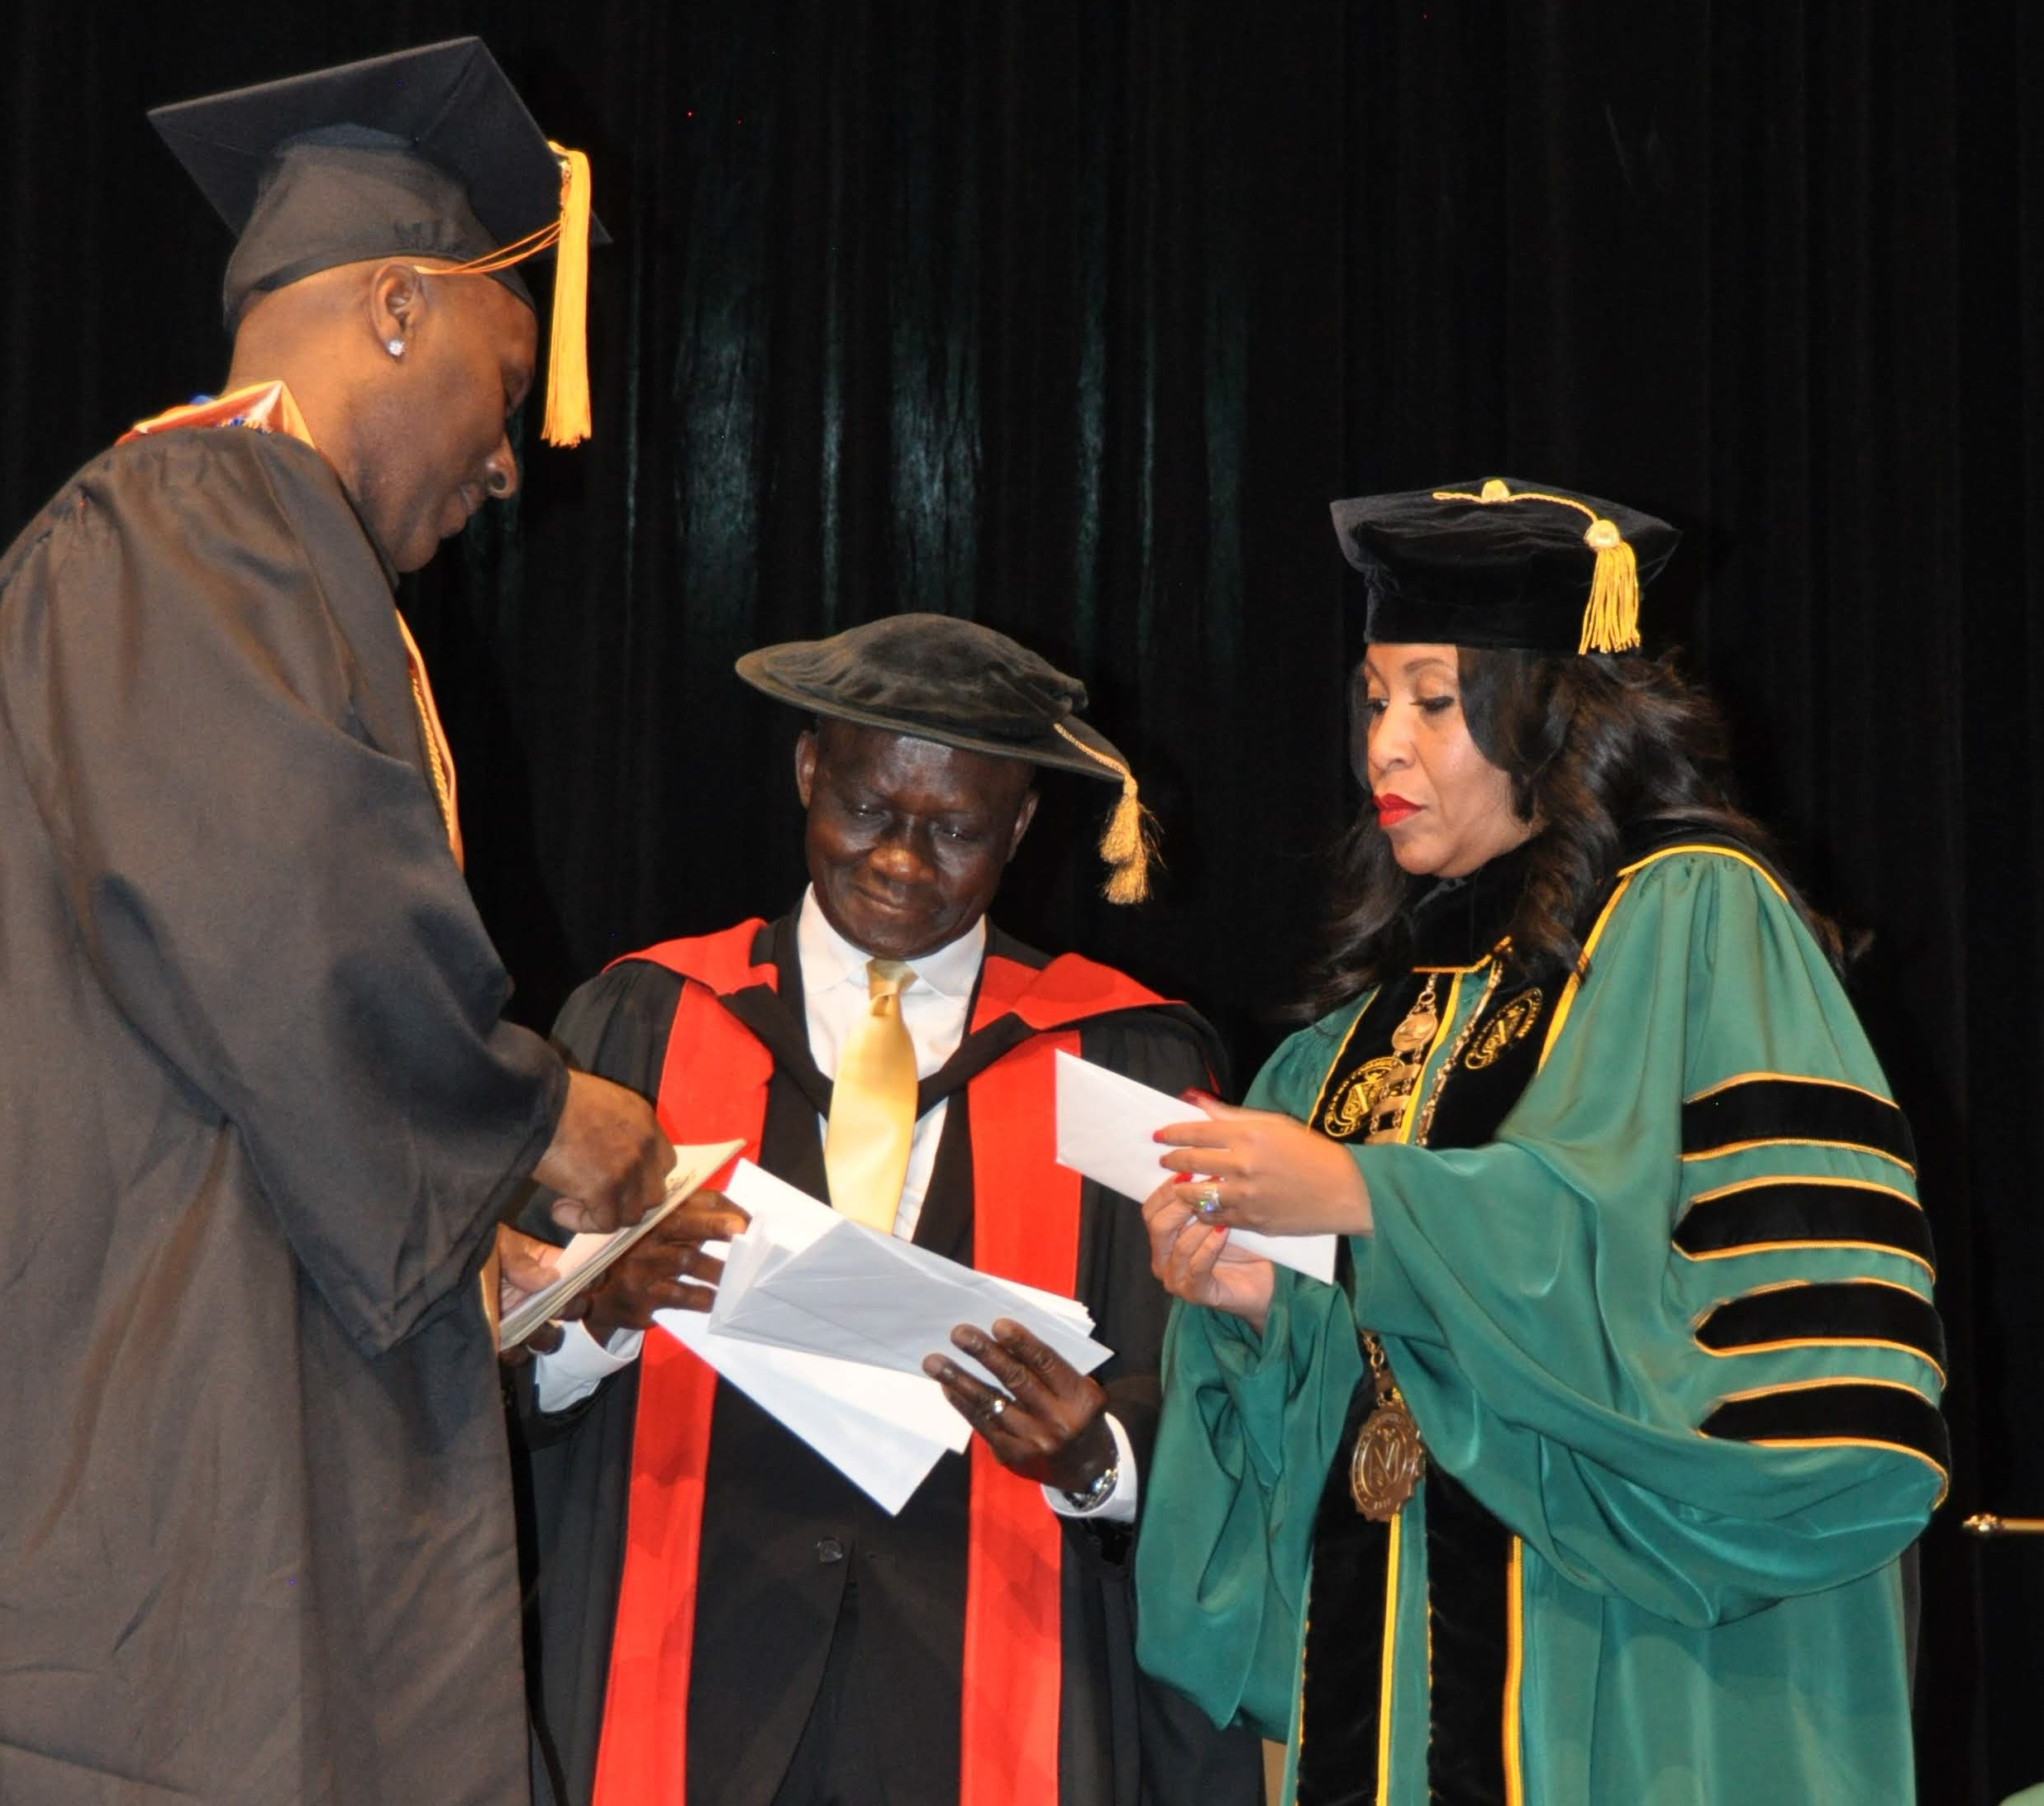 Dr. David Adegboye, vice chancellor of Academic, Evening & Weekend Affairs (center), presents a scholarship to a graduate during the Delgado Community College Commencement Exercises on Tuesday, Dec. 17, 2019. Delgado Chancellor Larissa Littleton-